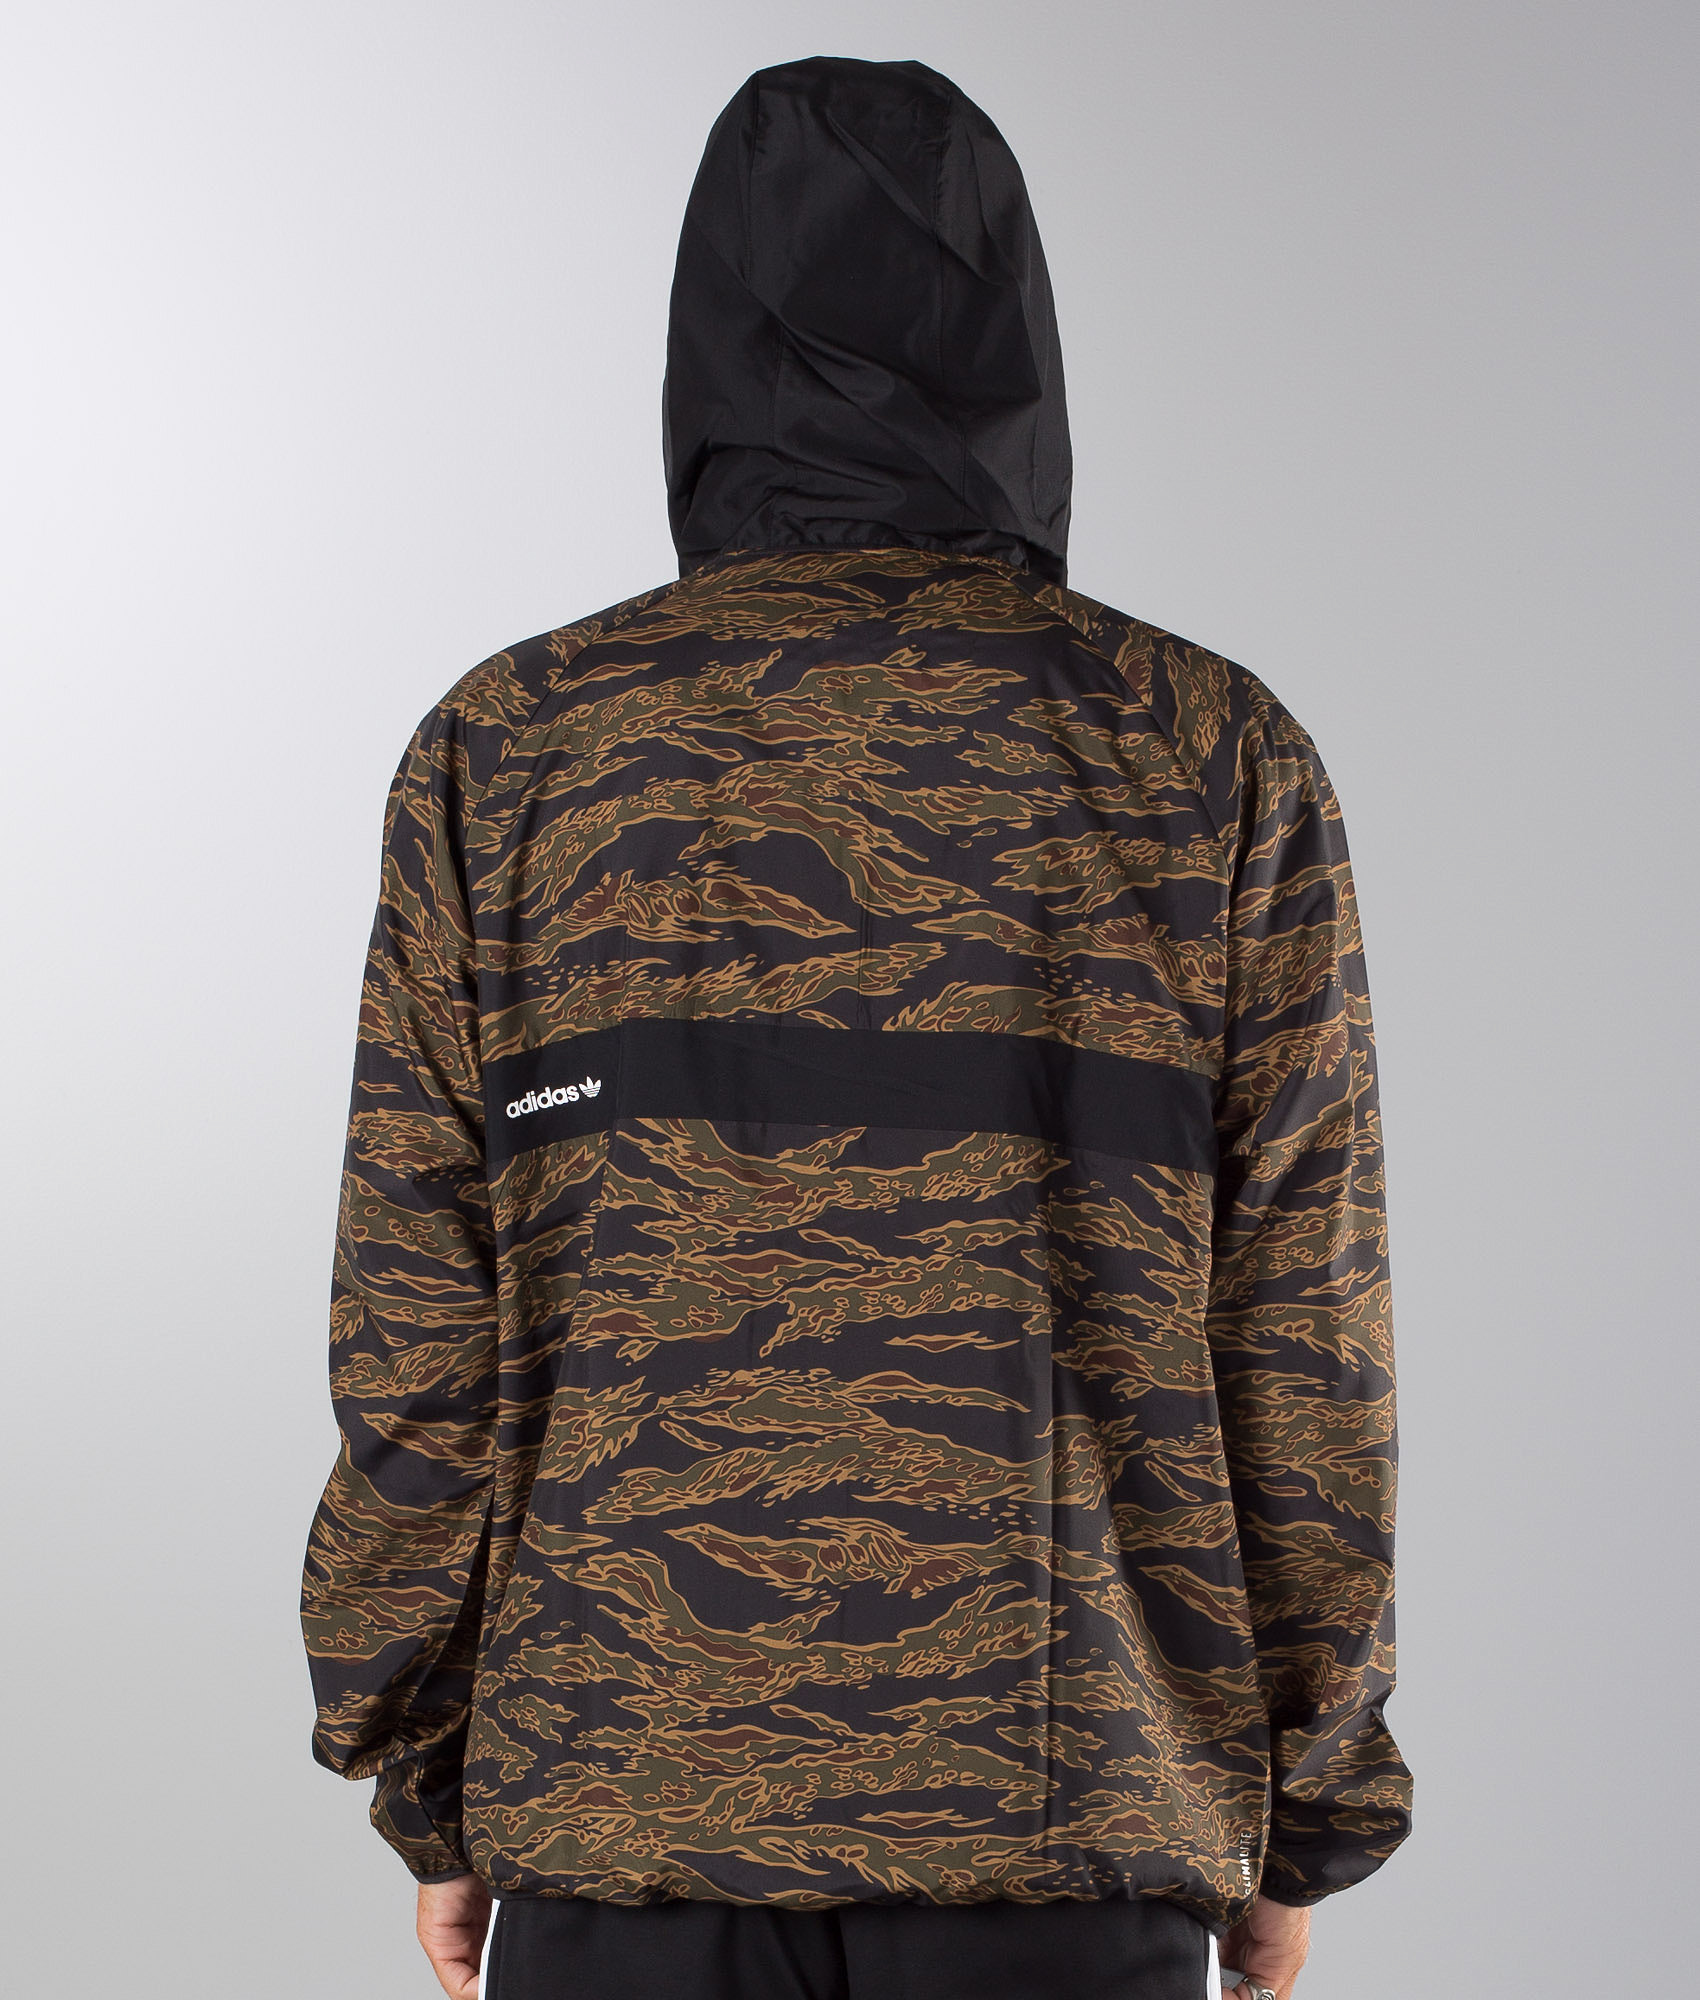 Adidas Skateboarding Camo Blackbird Packable Jacket Camo Print Black ... 423e688fadc5